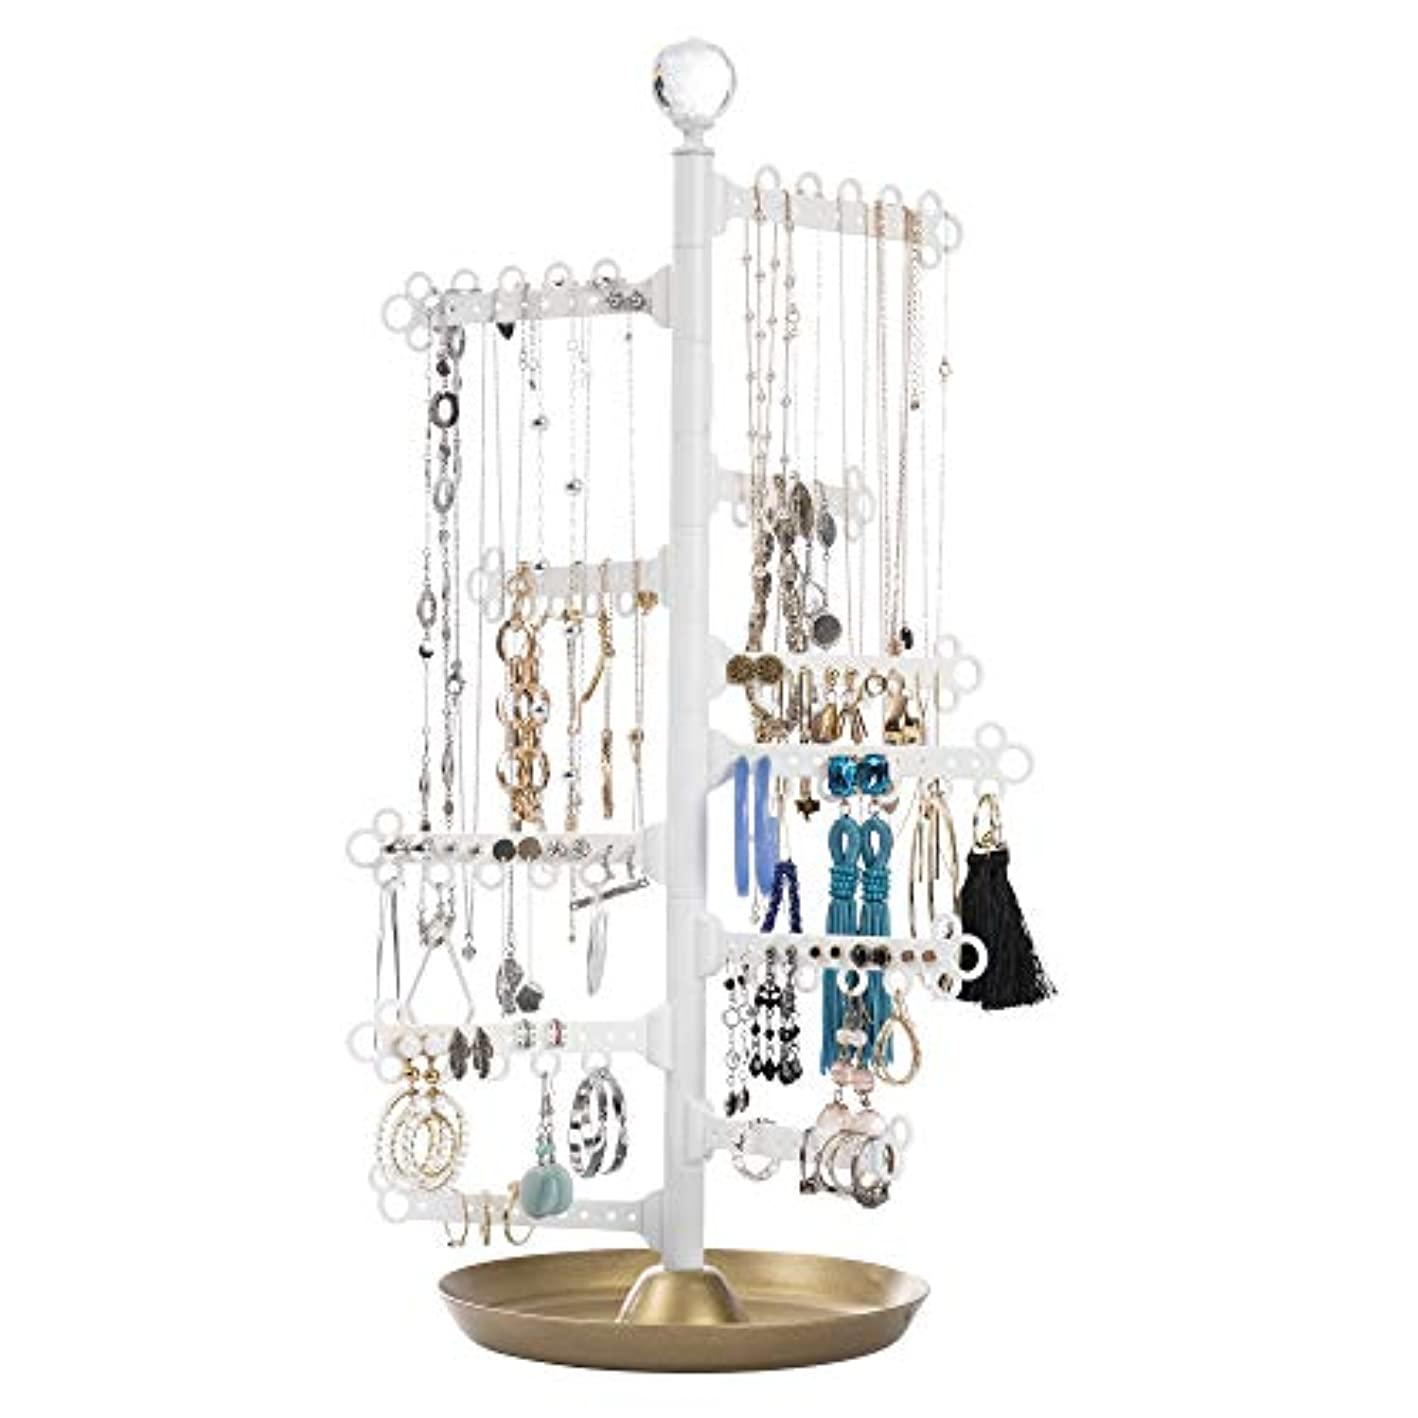 All Hung Up 12-Tier Extra Capacity Jewelry Organizer Holder Stand Tower Tree with Dish/Tray - Display Everything - Necklaces, Earrings (110 Pairs), Rings, Bracelets - Limited Edition: Gold/White